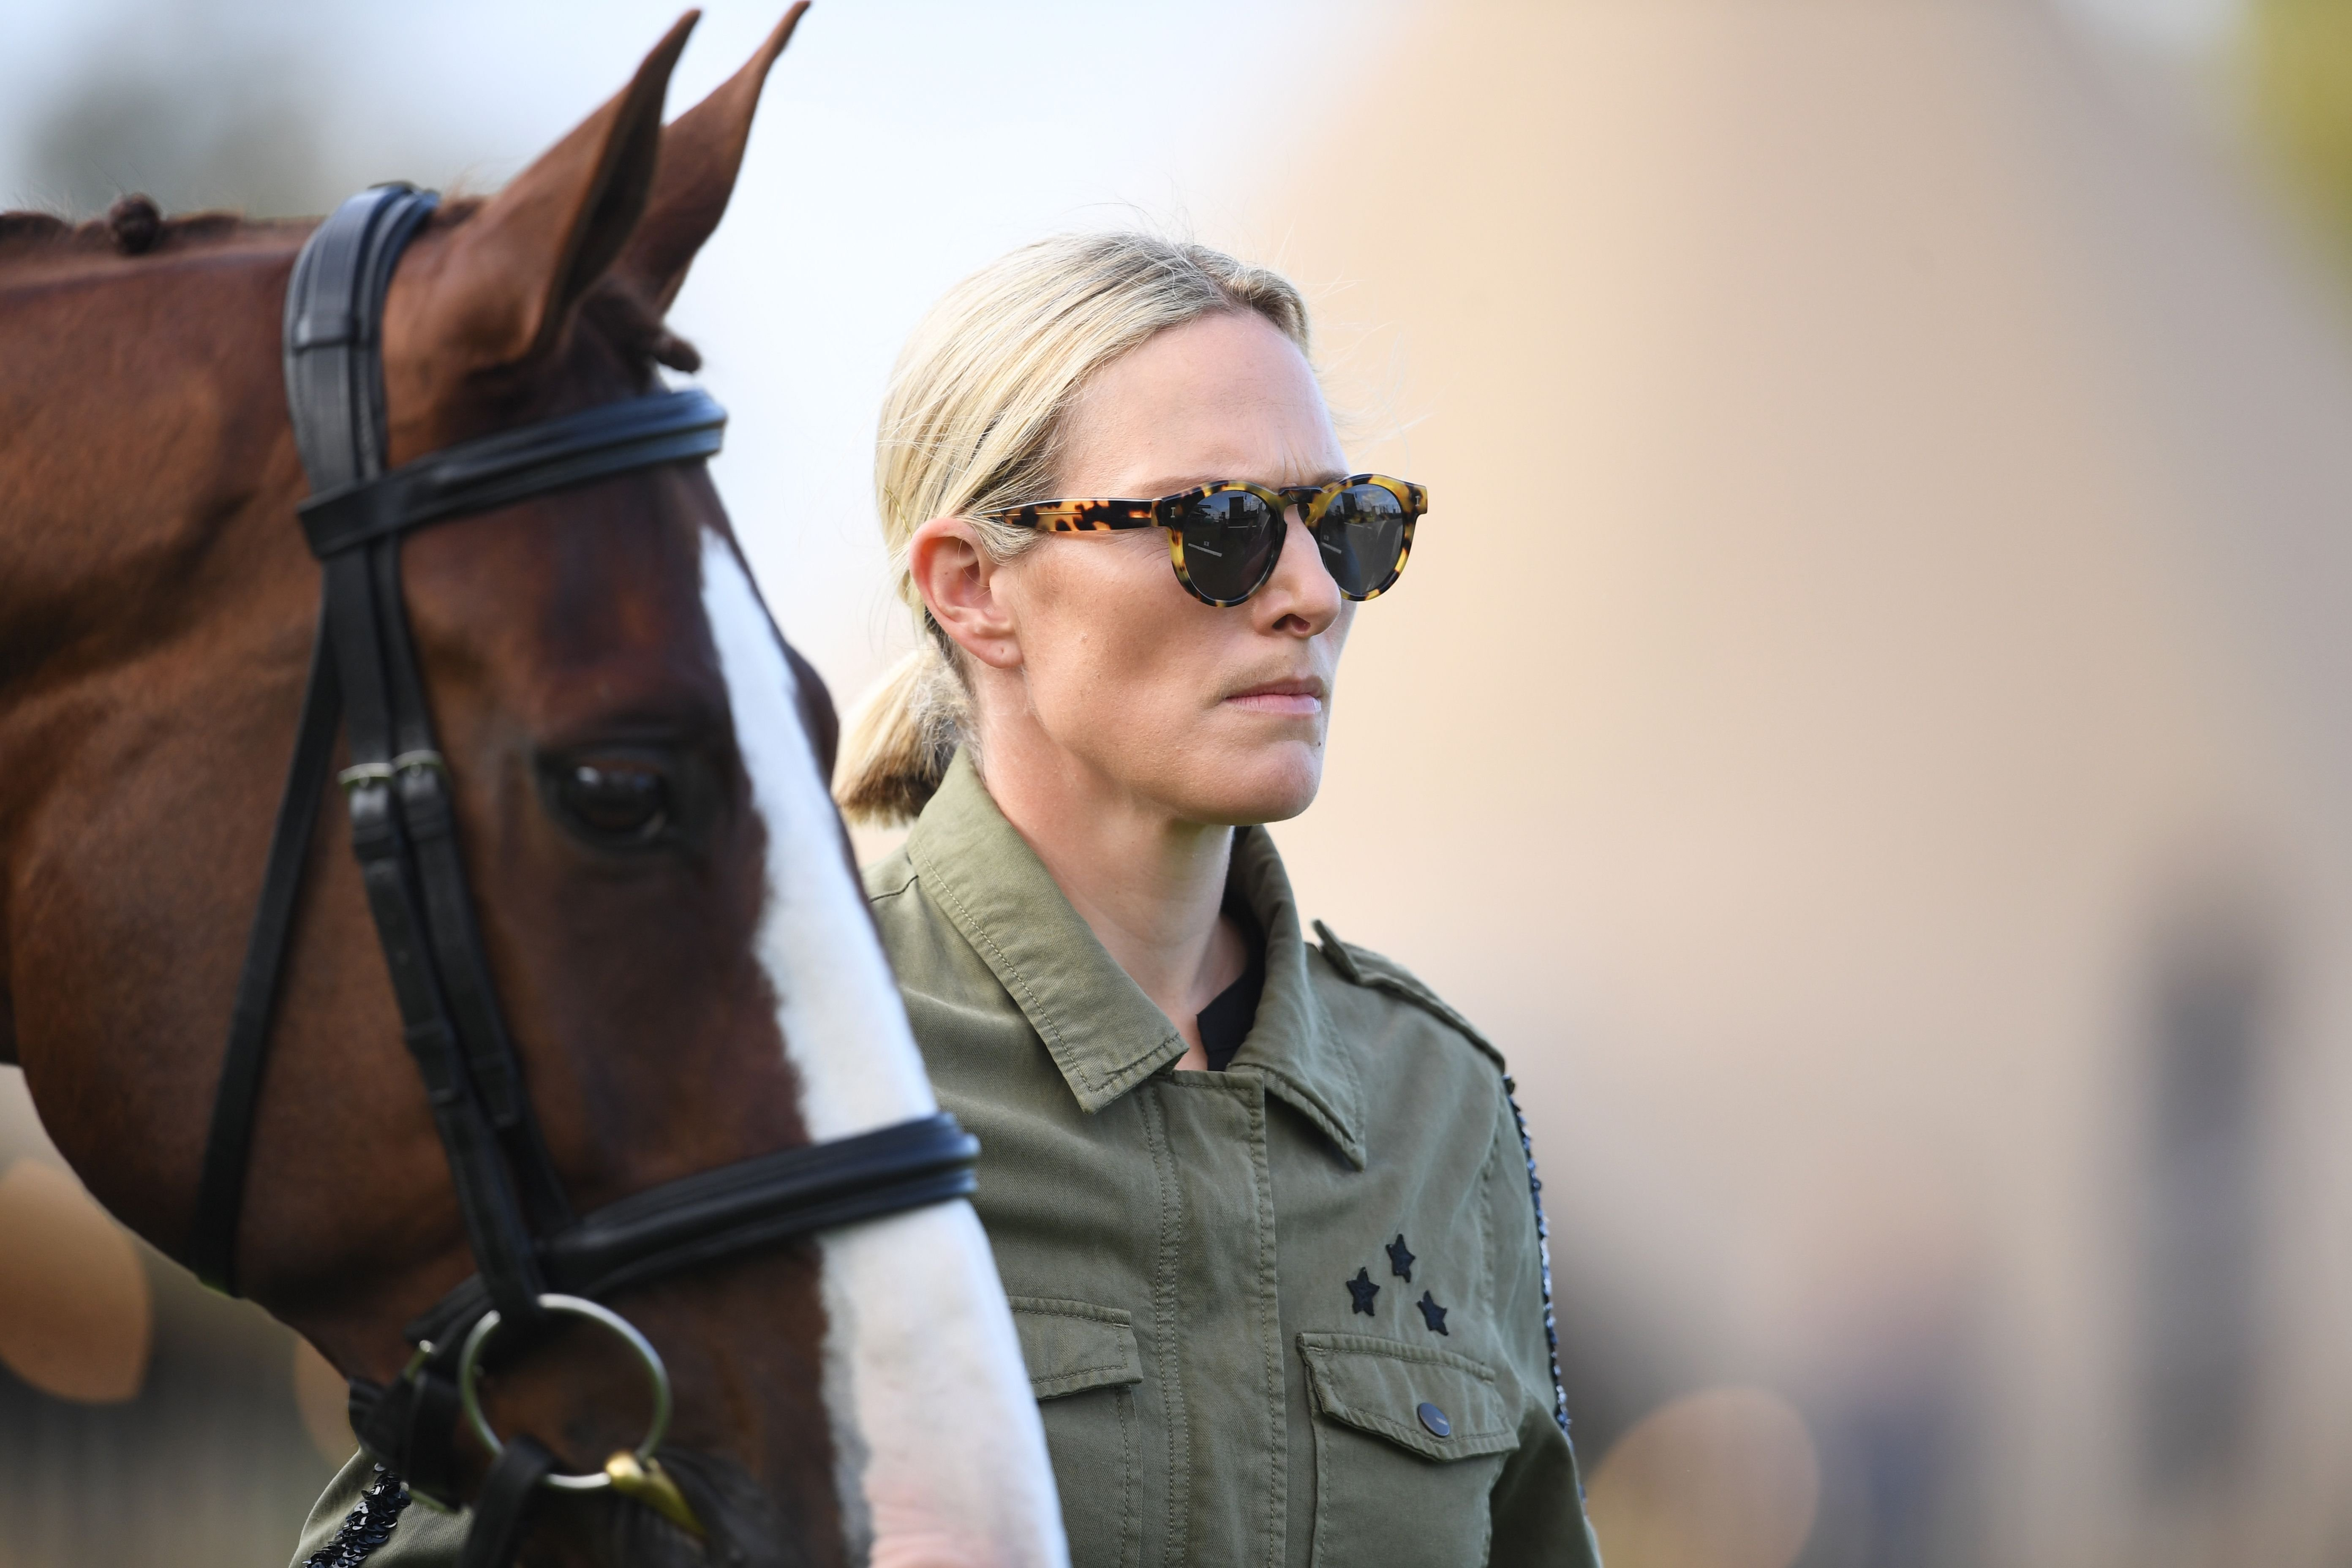 Zara Tindall at the Land Rover Burghley Horse Trials on September 04, 2019 | Photo: Getty Images